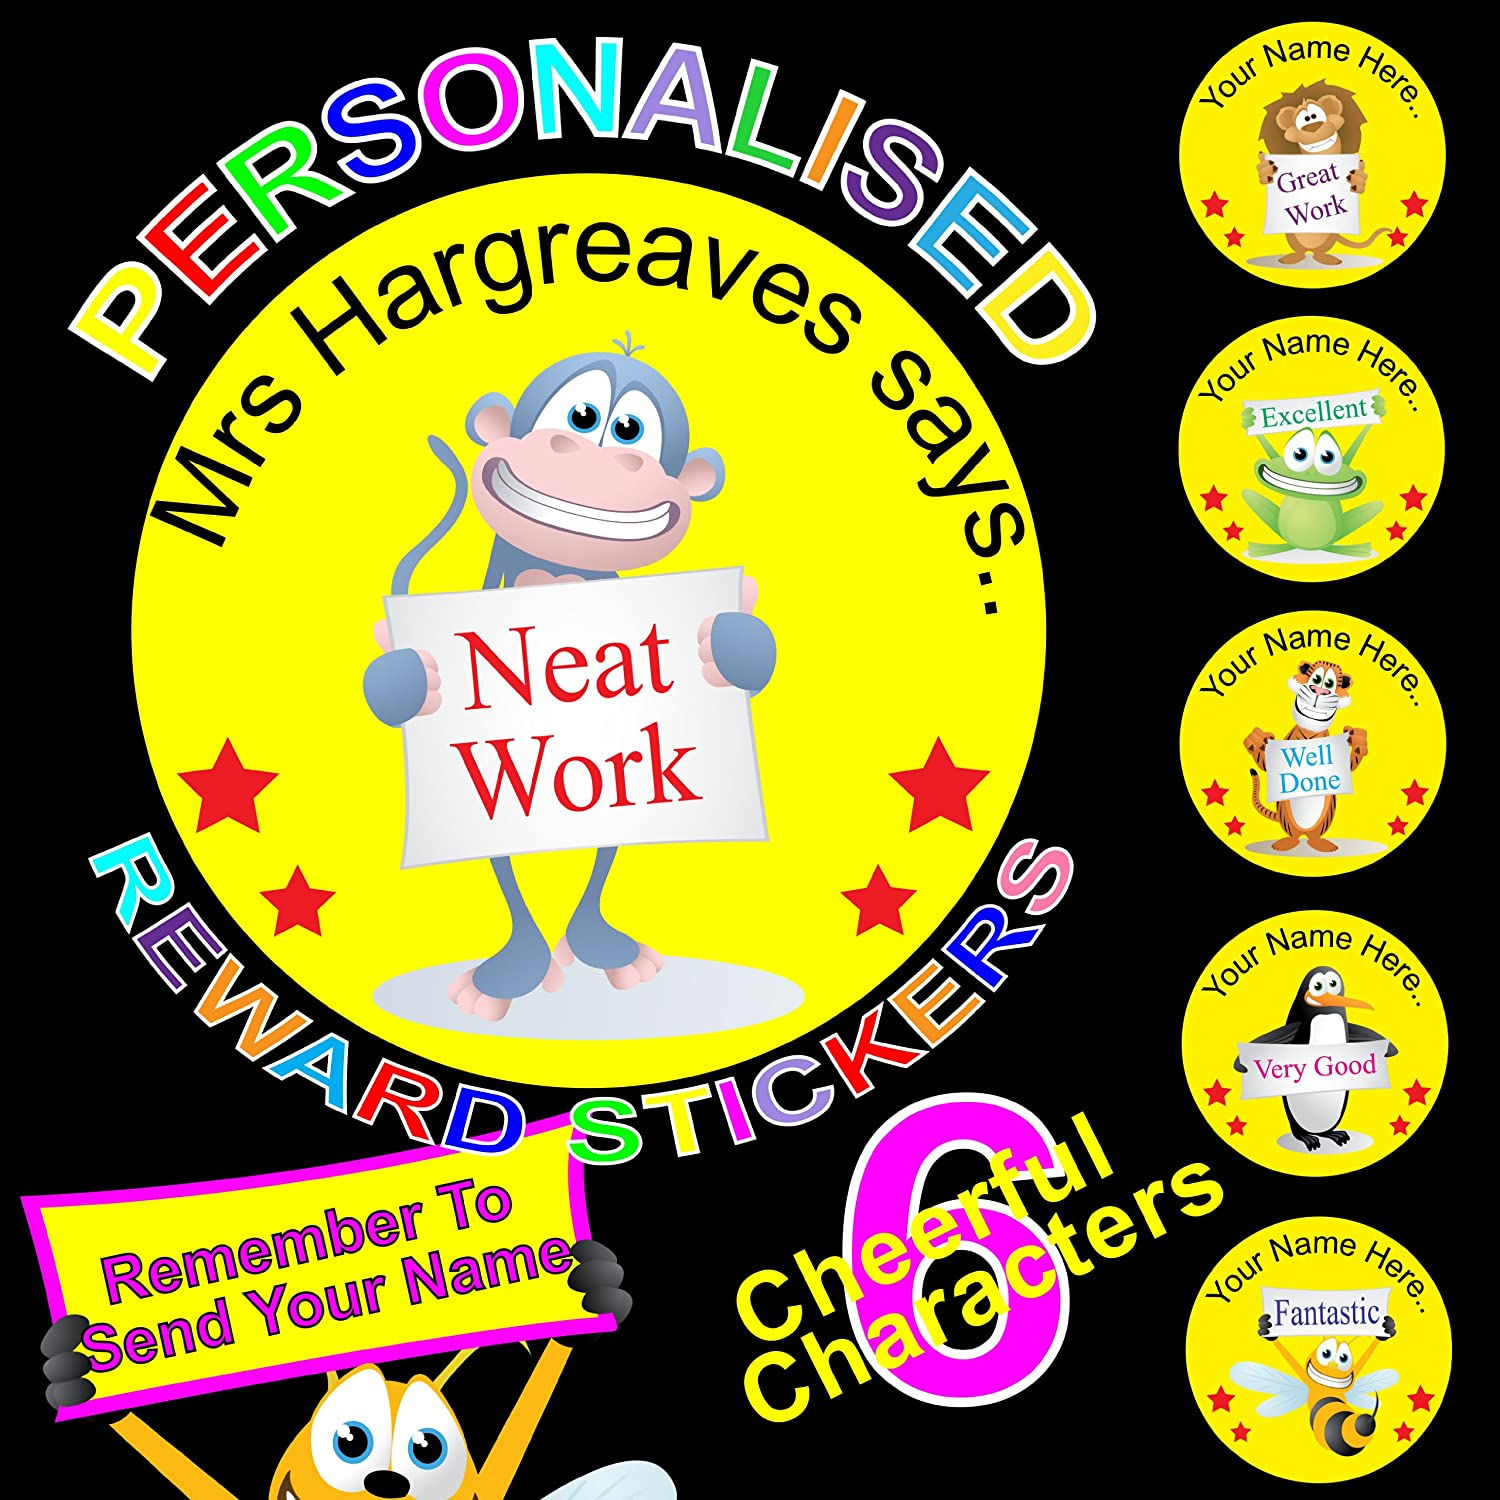 216 personalised reward stickers labels for teachers or parents add your name to the stickers to make them extra special a big encouragement for your